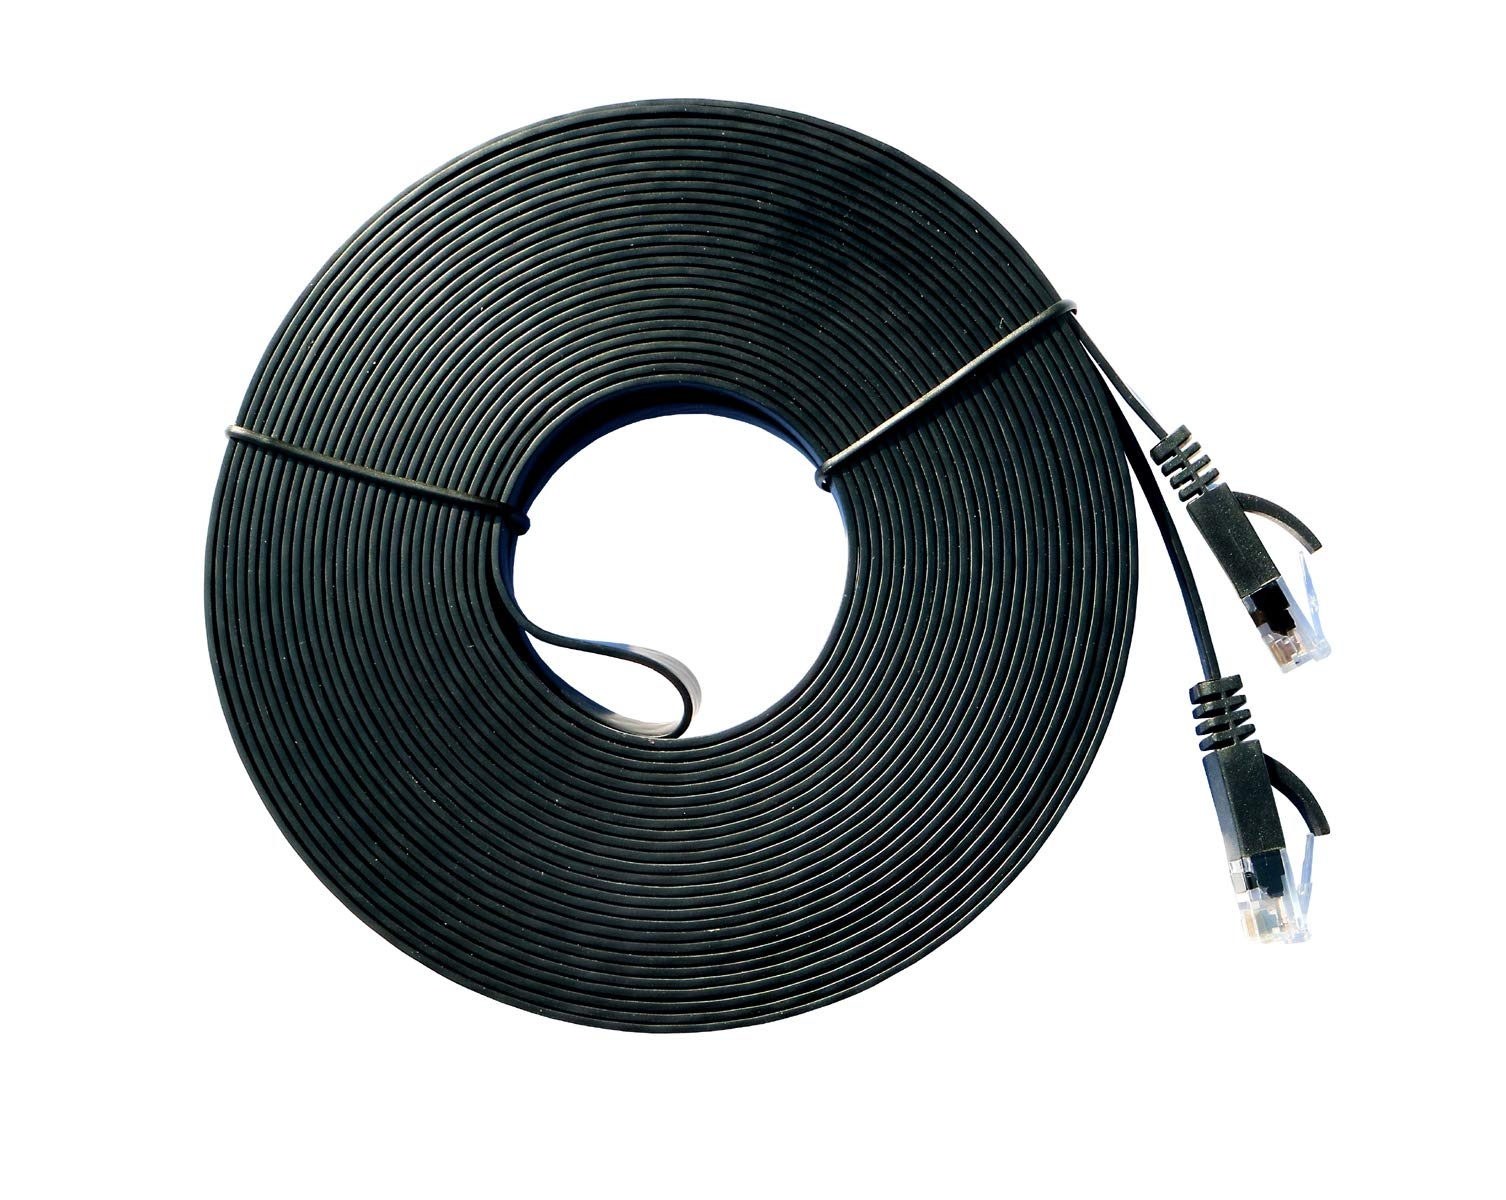 Cat 6 Ethernet Flat Cable 50ft, SZWD Store Slim Wire Patch Cord Rj45 High Speed Internet Network Cable for PS4 Computer Switch Boxes Modem Router-Black